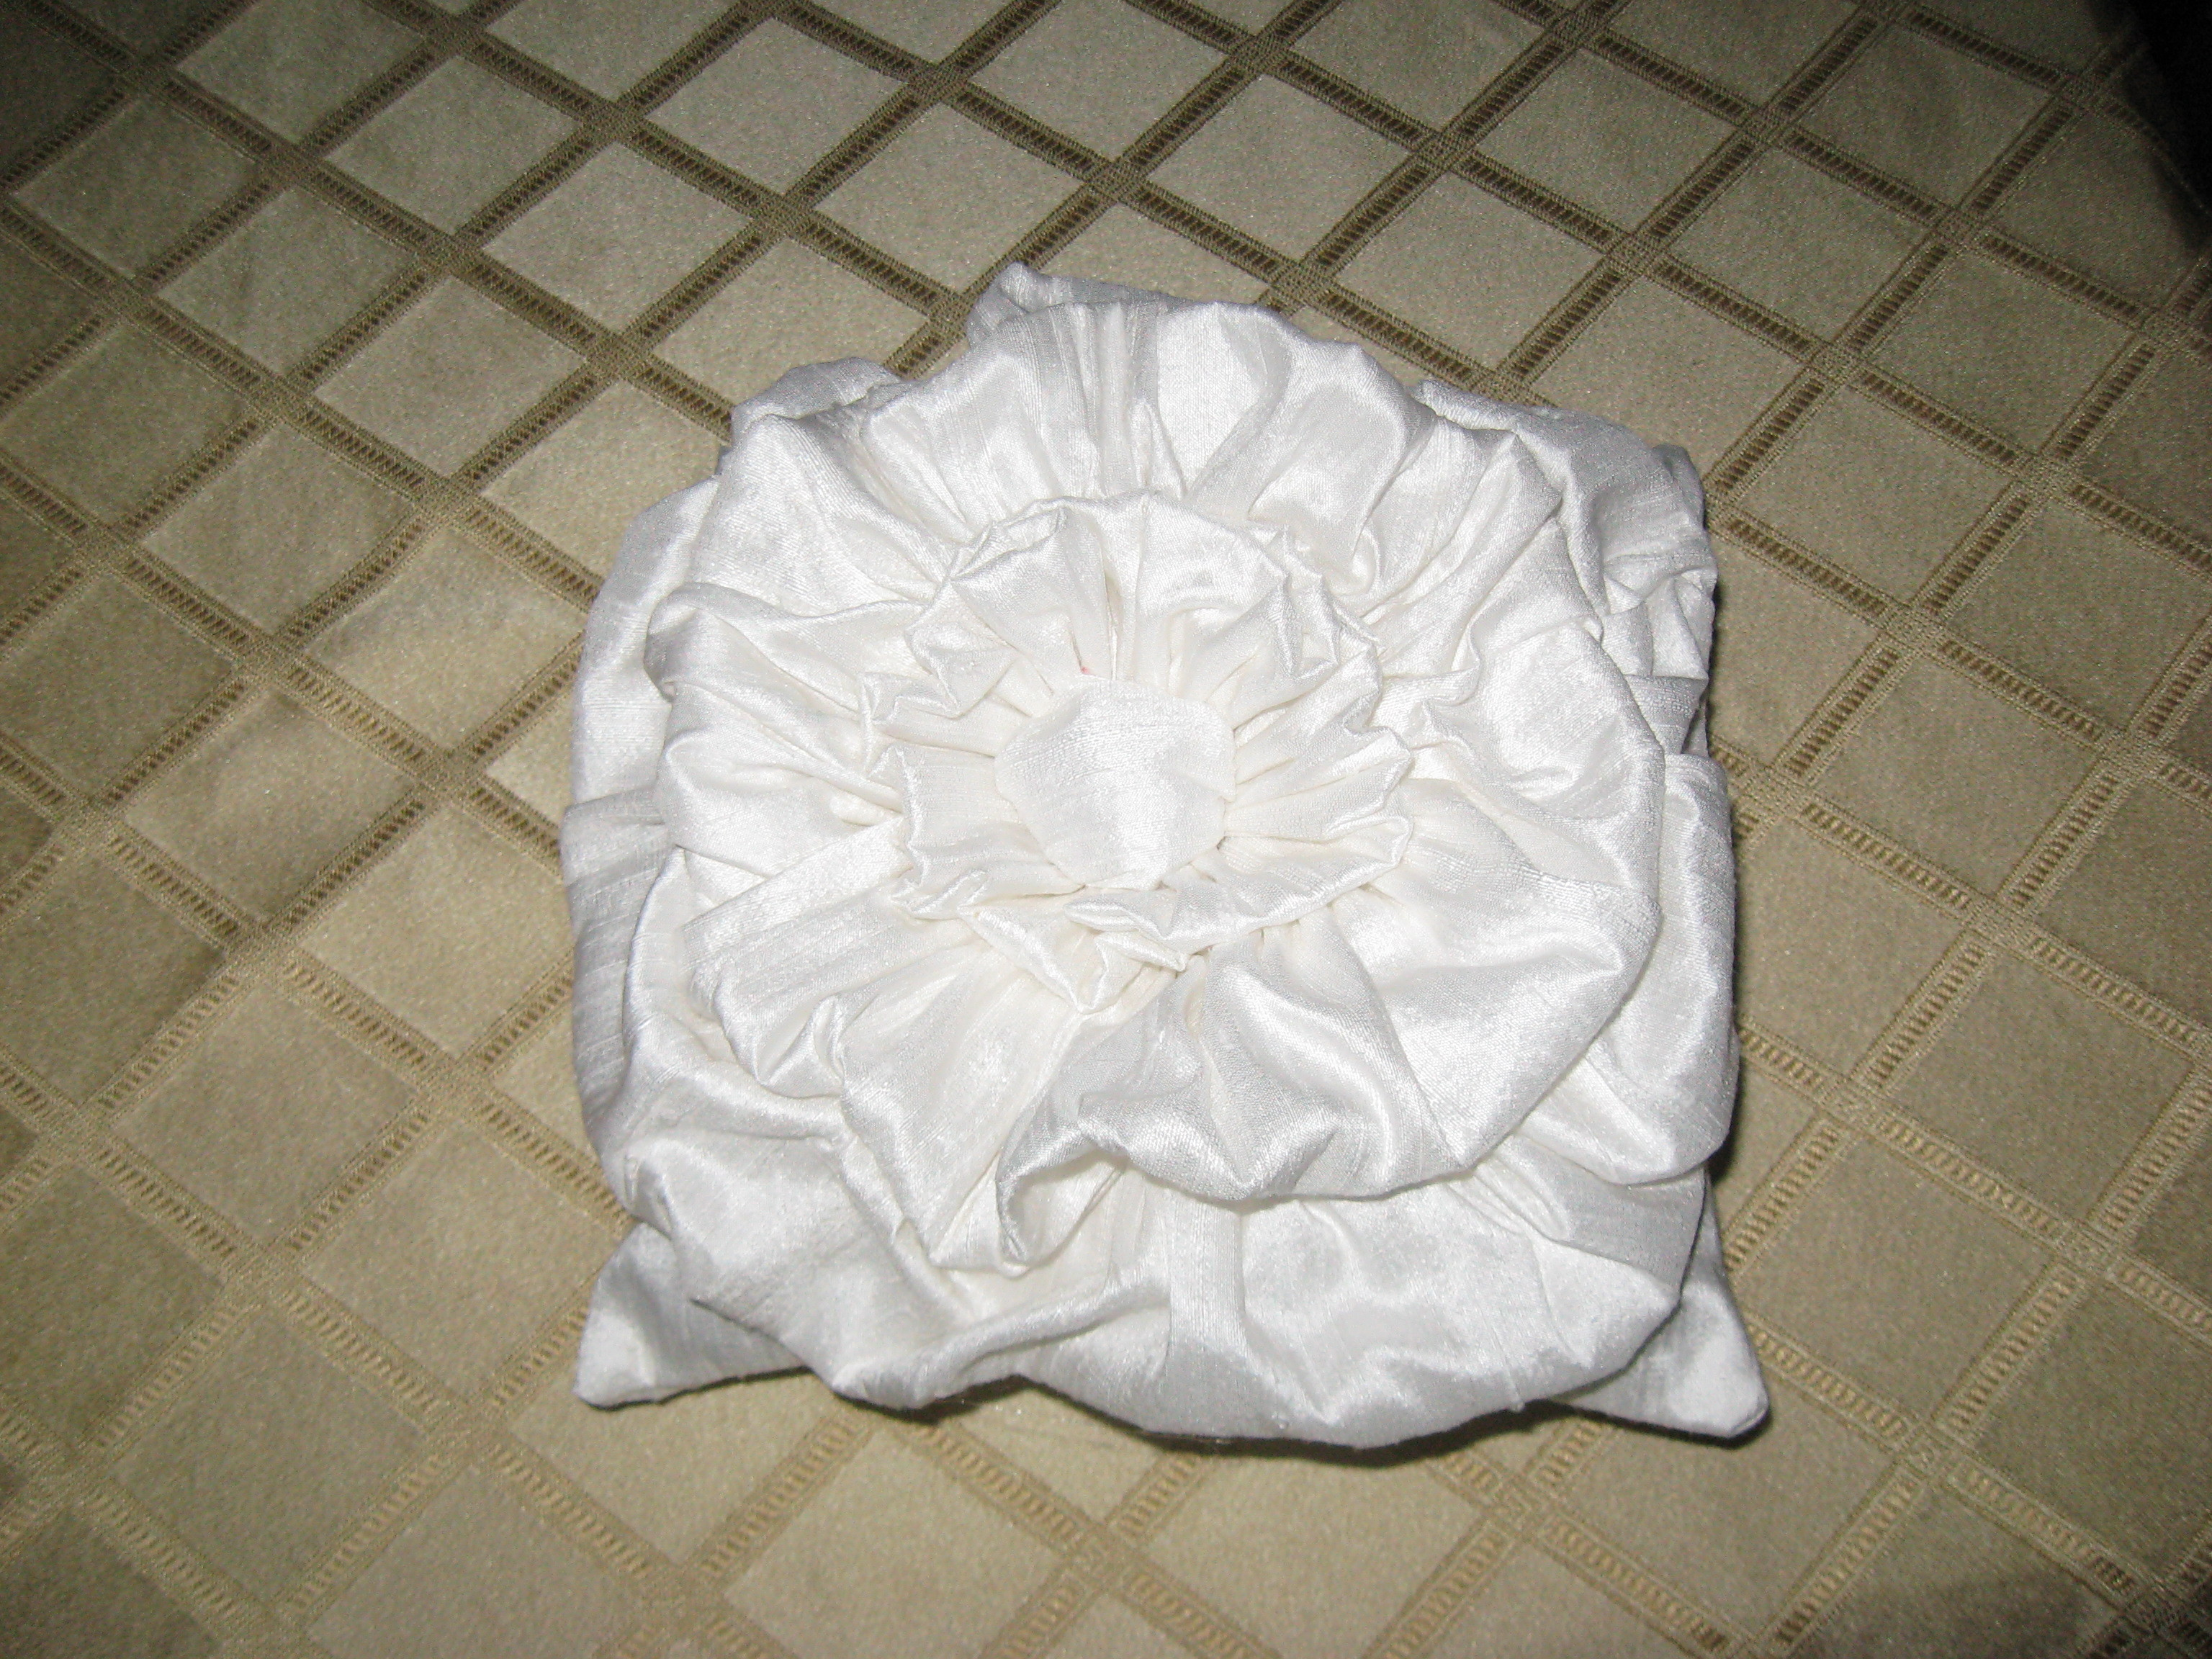 Ceremony, Flowers & Decor, white, Ring, Pillow